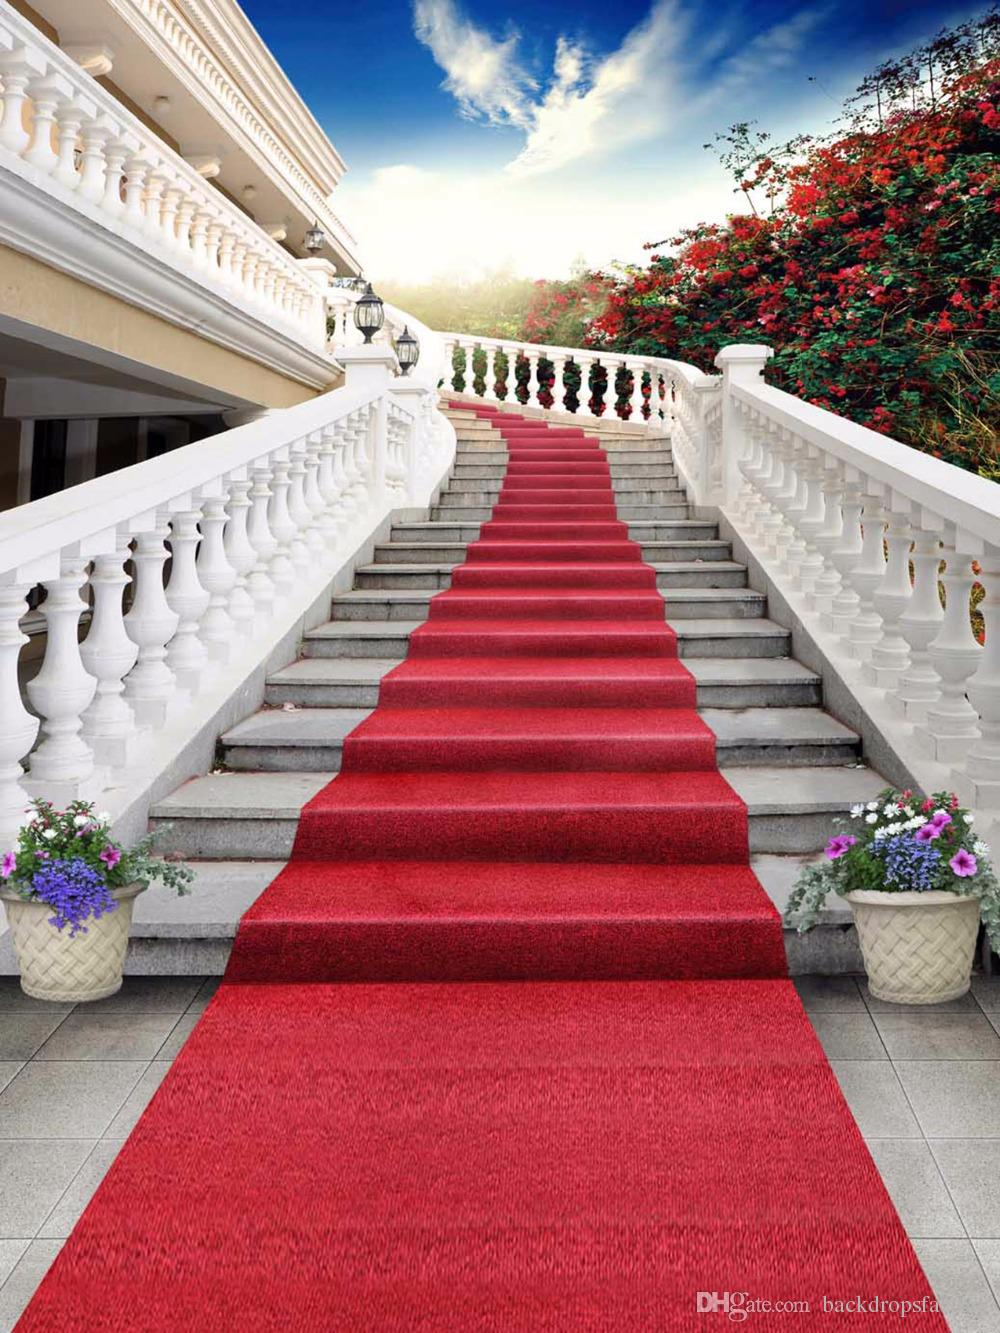 2020 Outdoor Staircase Wedding Backdrops Red Carpet Blue Sky Red Flowers Scenic Backdrop Photography Studio Backgrounds Vinyl Cloth From Backdropsfactory 25 47 Dhgate Com